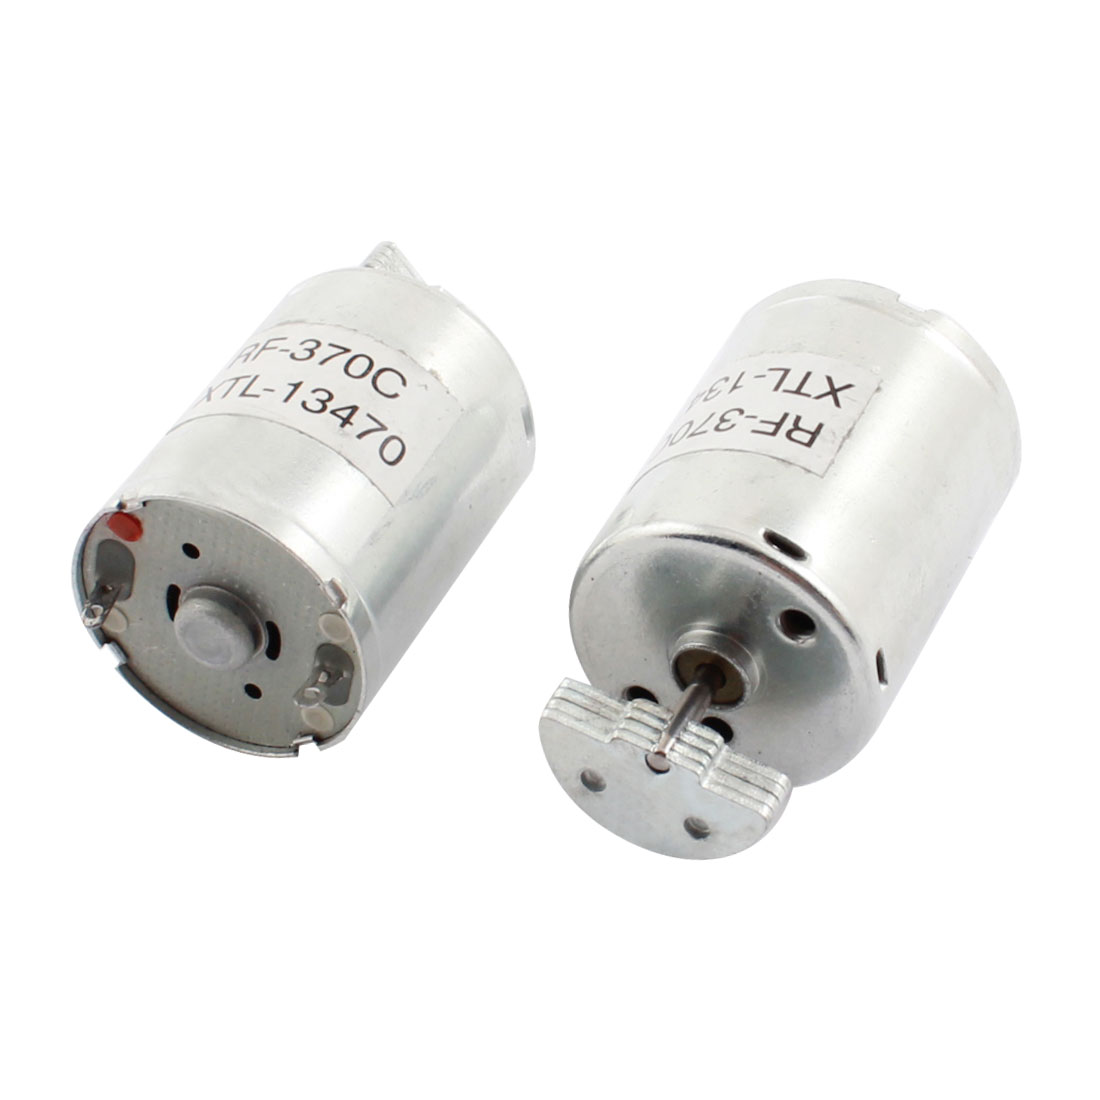 2Pcs Car Toy DC 6-9V 4300RPM 2-Terminal Soldering Vibration Motor